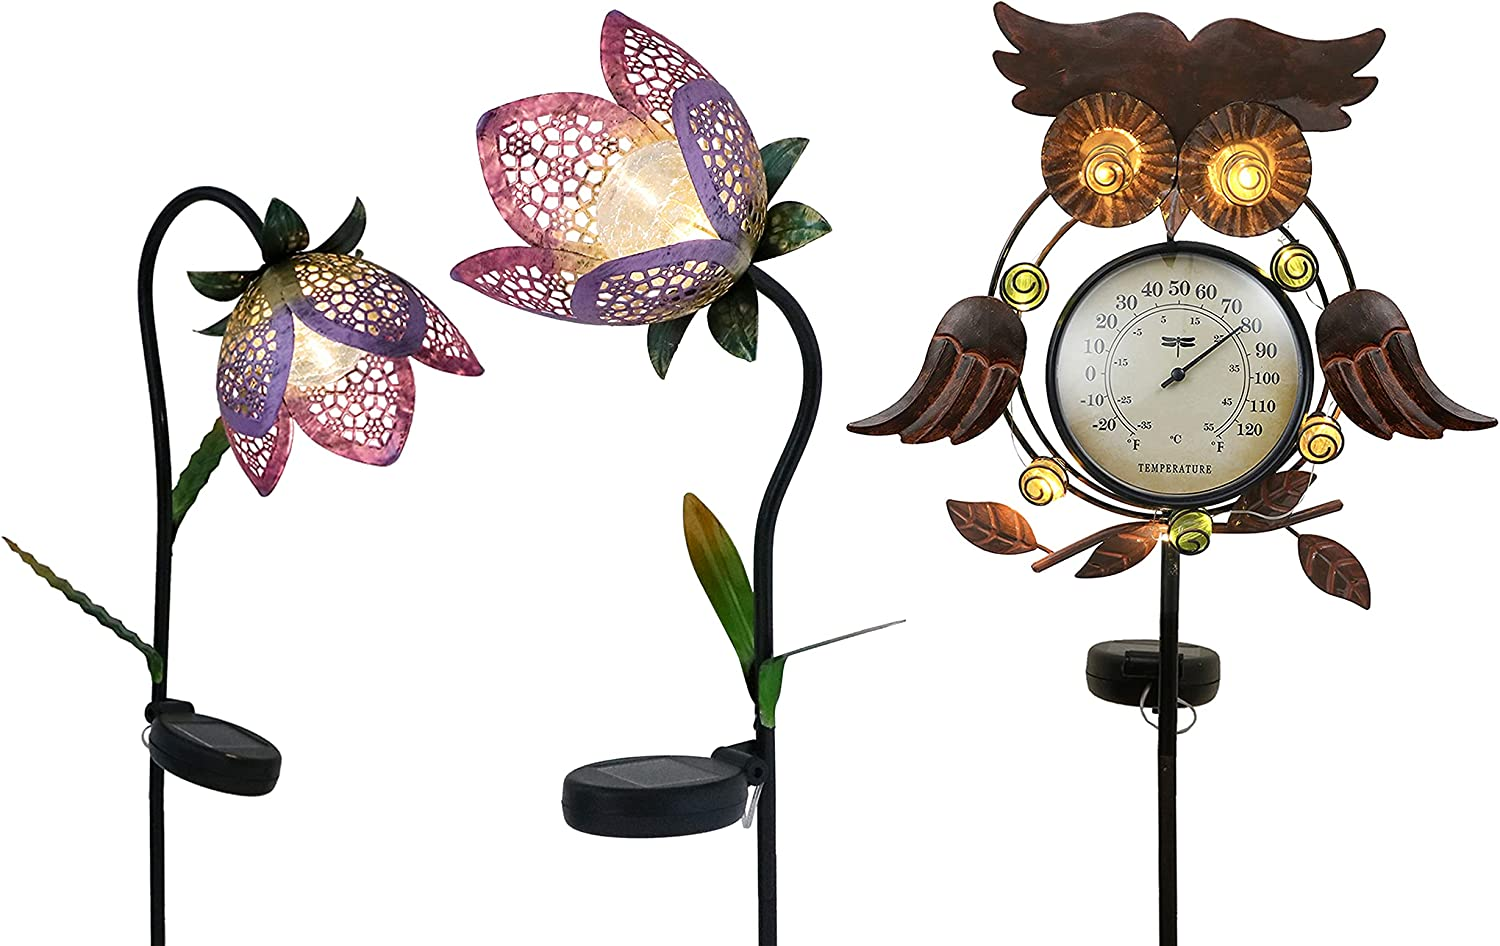 TERESA'S COLLECTIONS Garden Solar Lights Stakes Outdoor Decorations Bundle | Decorative Metal Flower and Owl Thermometer Stakes Decor for Outside Yard Patio Porch